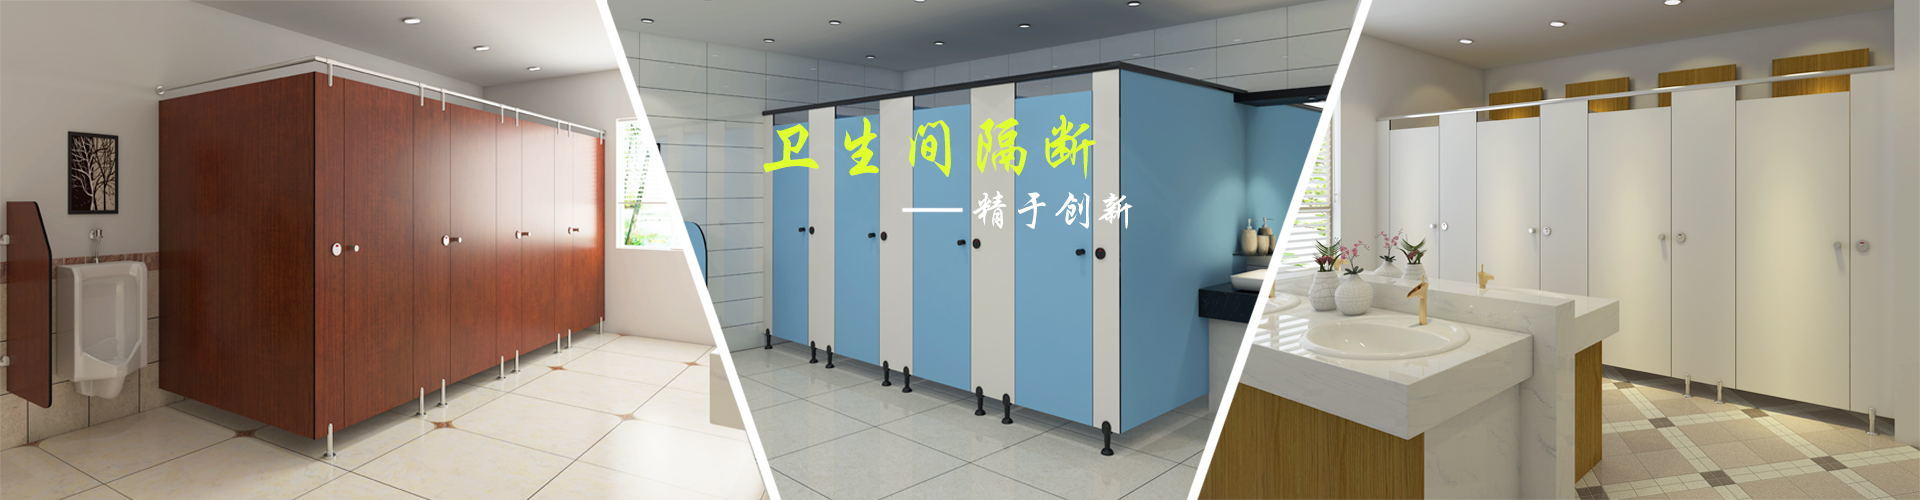 China gym bathroom shower cubicle door white color partition